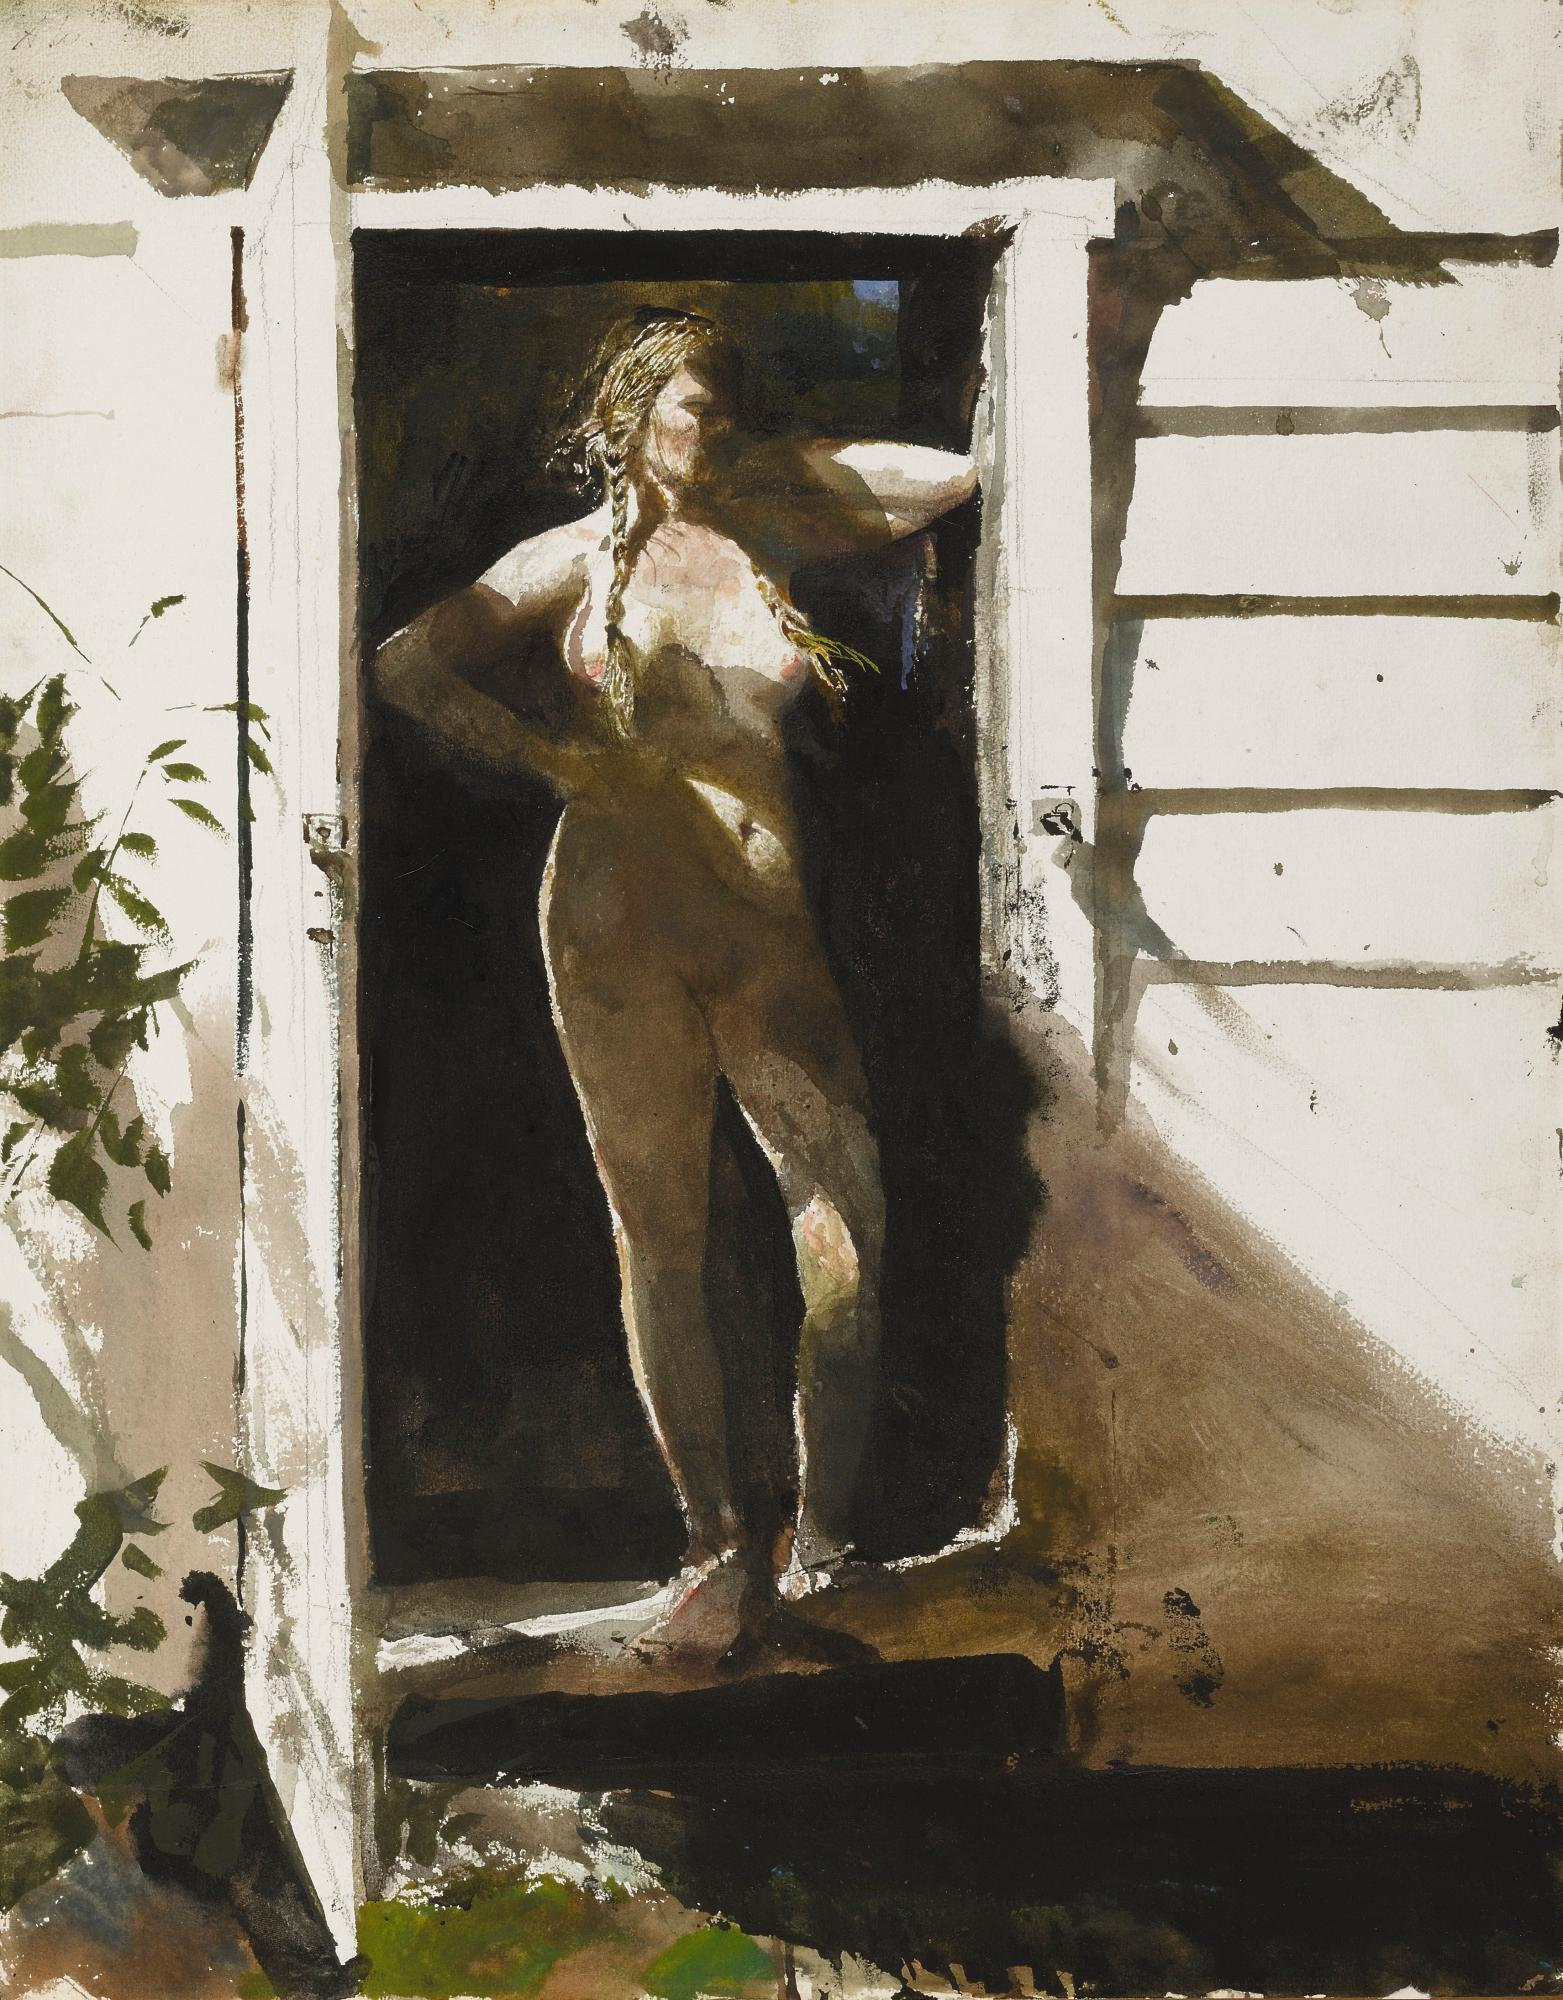 In The Doorway by Andrew Wyeth